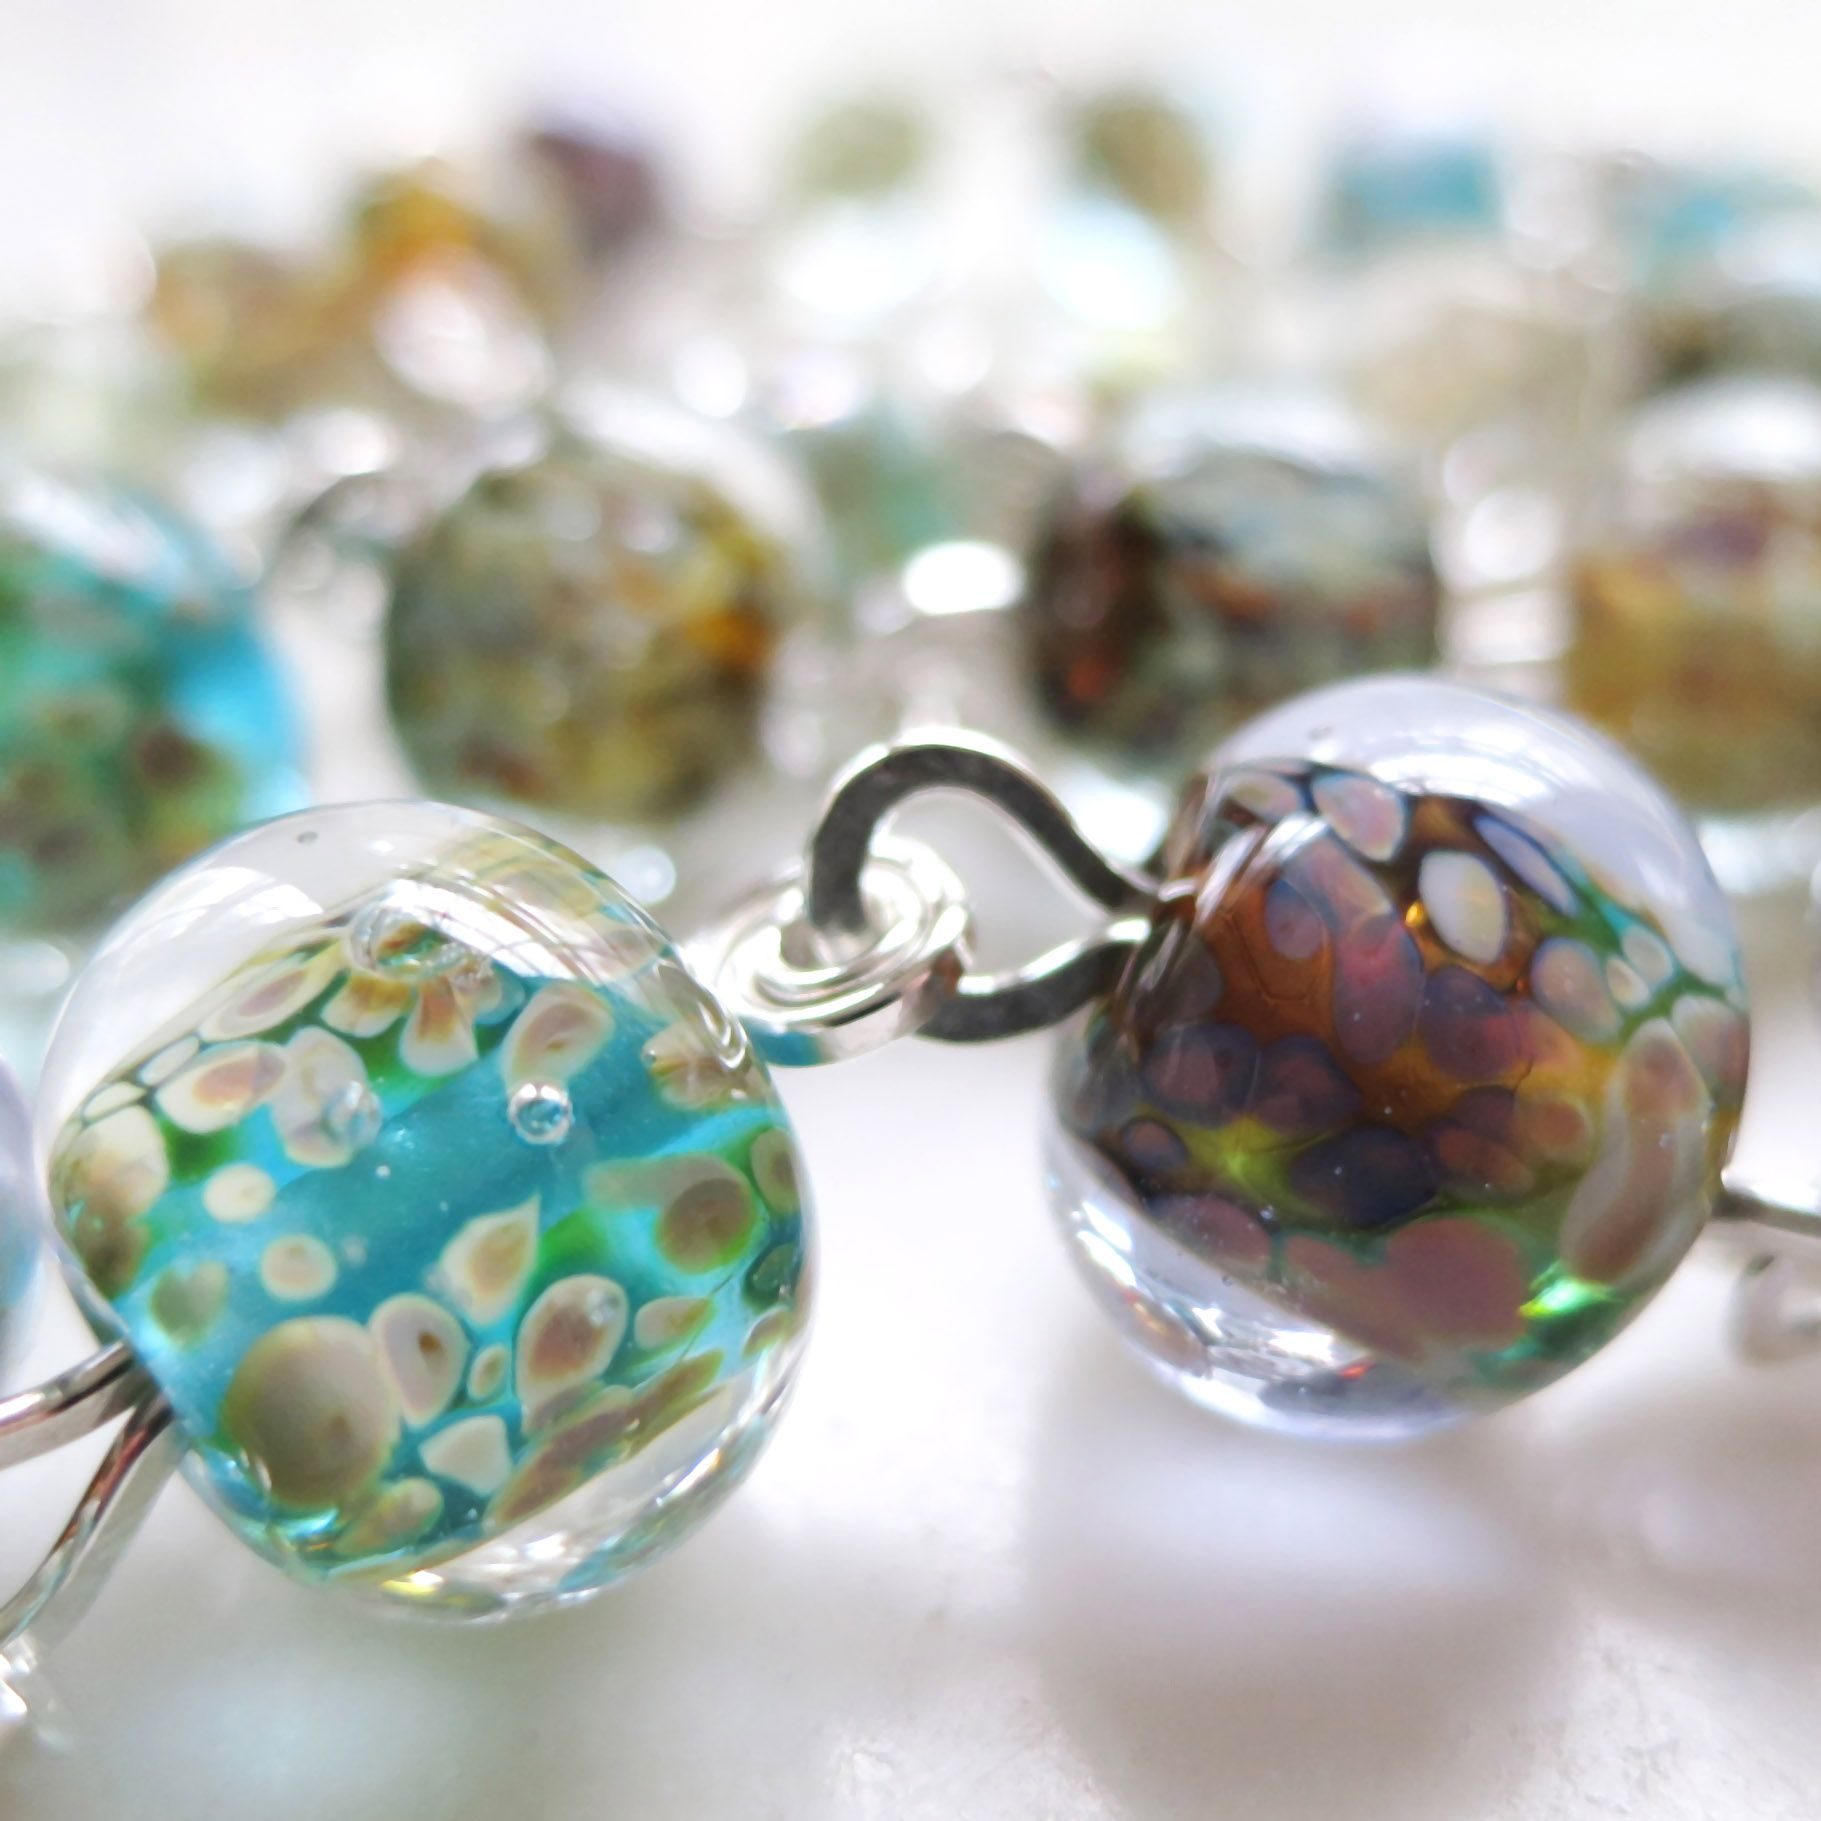 Lucinda Storms : Belvedere Beads - 'Rain' necklace (detail) - lampwork glass beads & sterling silver